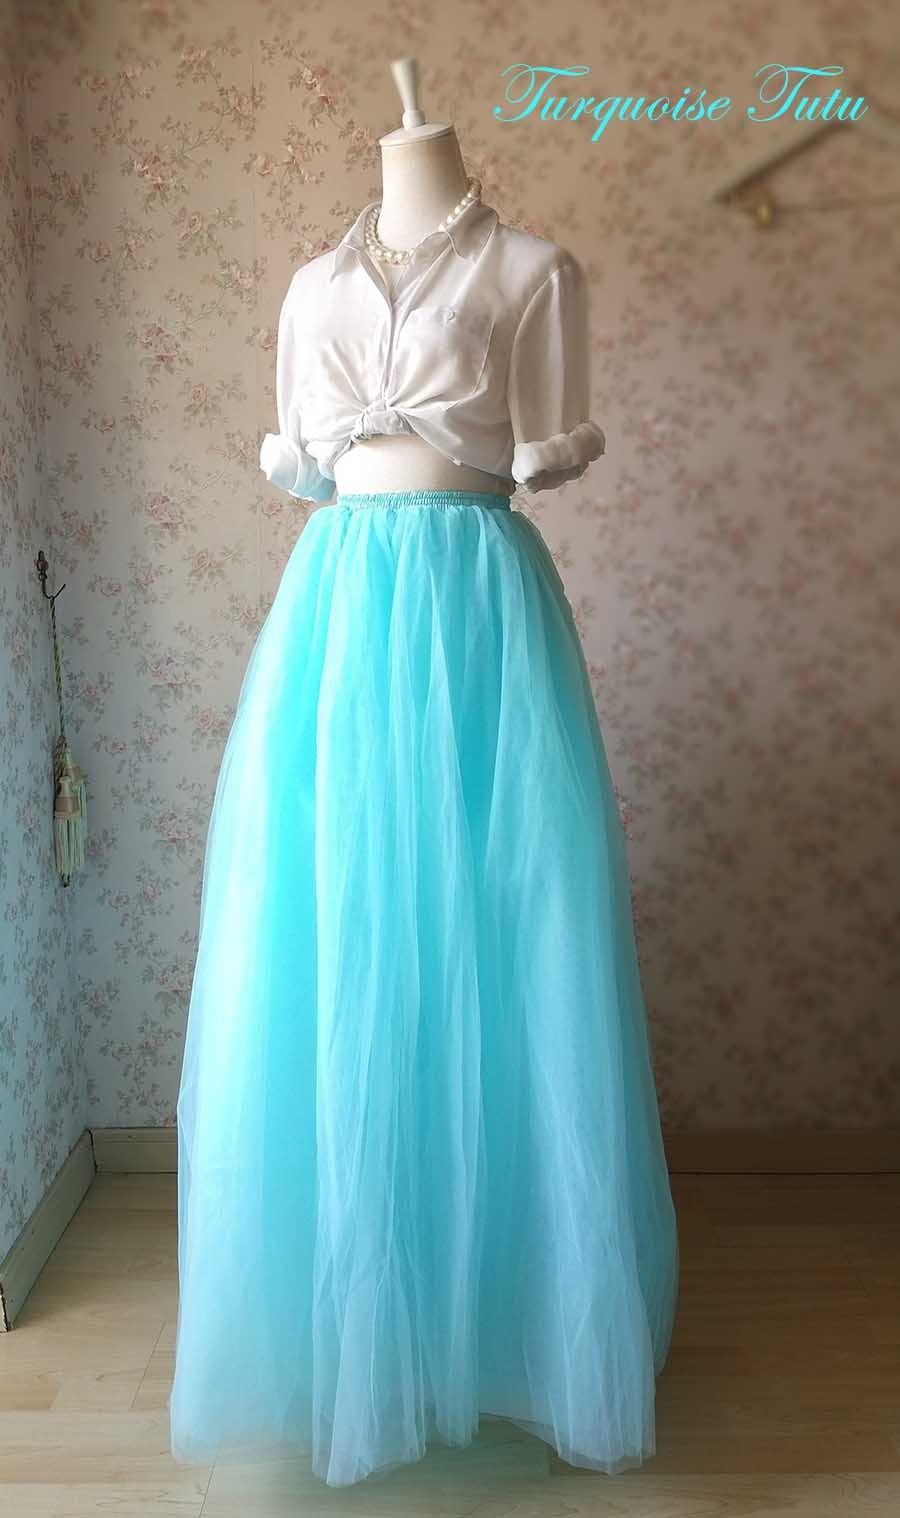 TURQUOISE BLUE Maxi Floor Length Tulle Skirt Plus Size 6-Layer Bridal Tutu Skirt